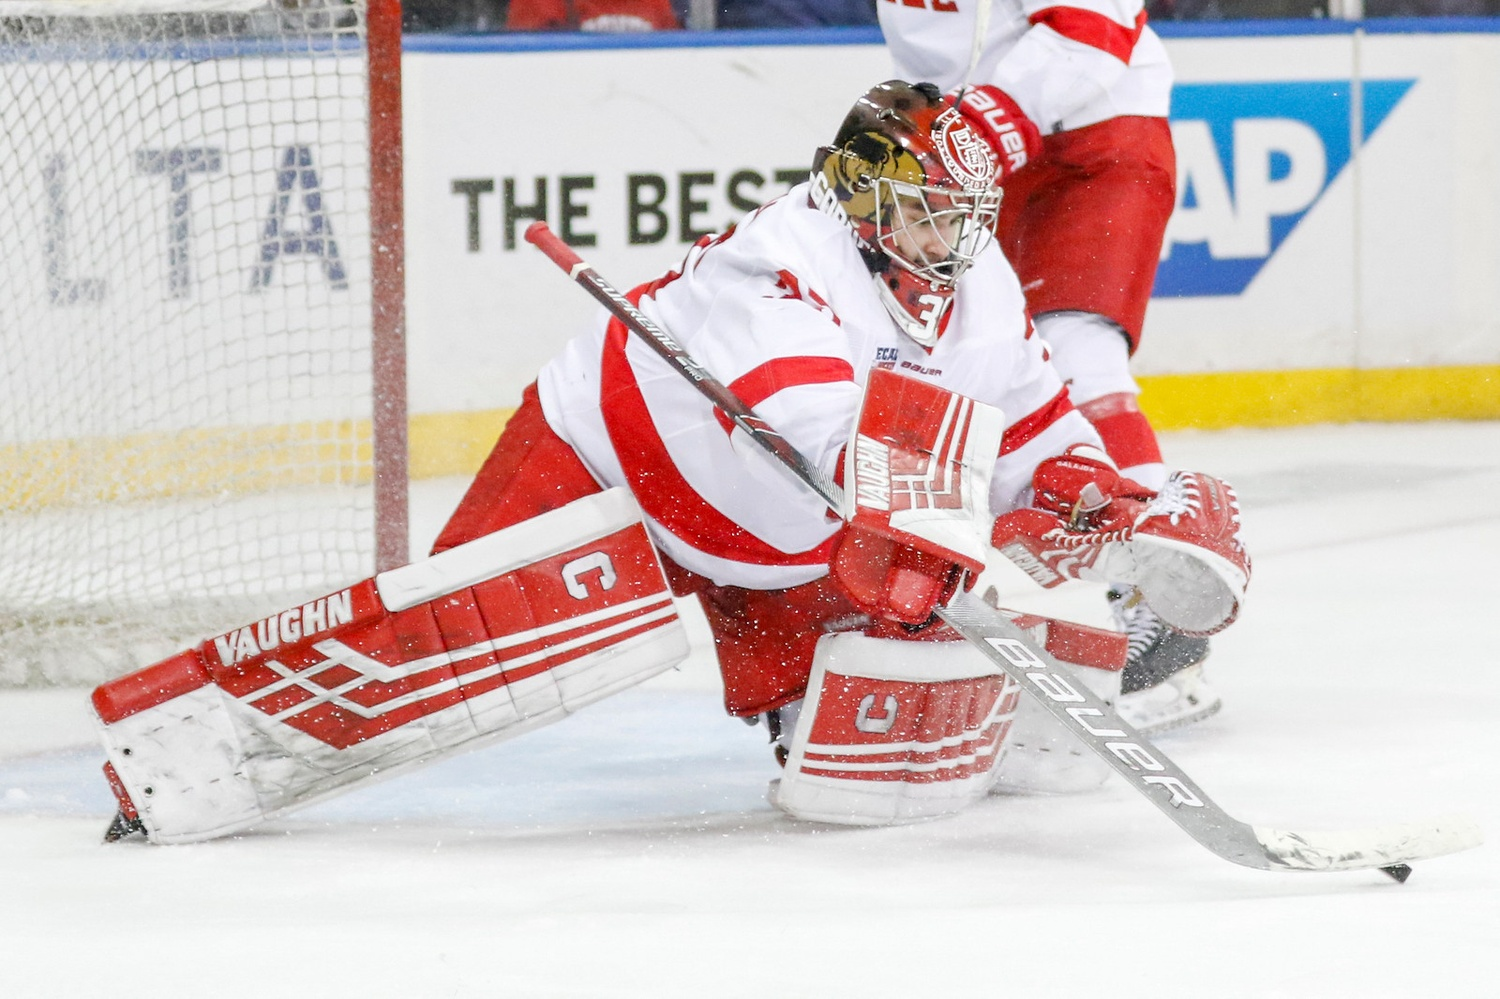 Big Red net-minder Matt Galajda returned from injury last Saturday in a win over Arizona St. He will have to fight to regain his starting spot, however, due to Austin McGrath's solid play in his absence.